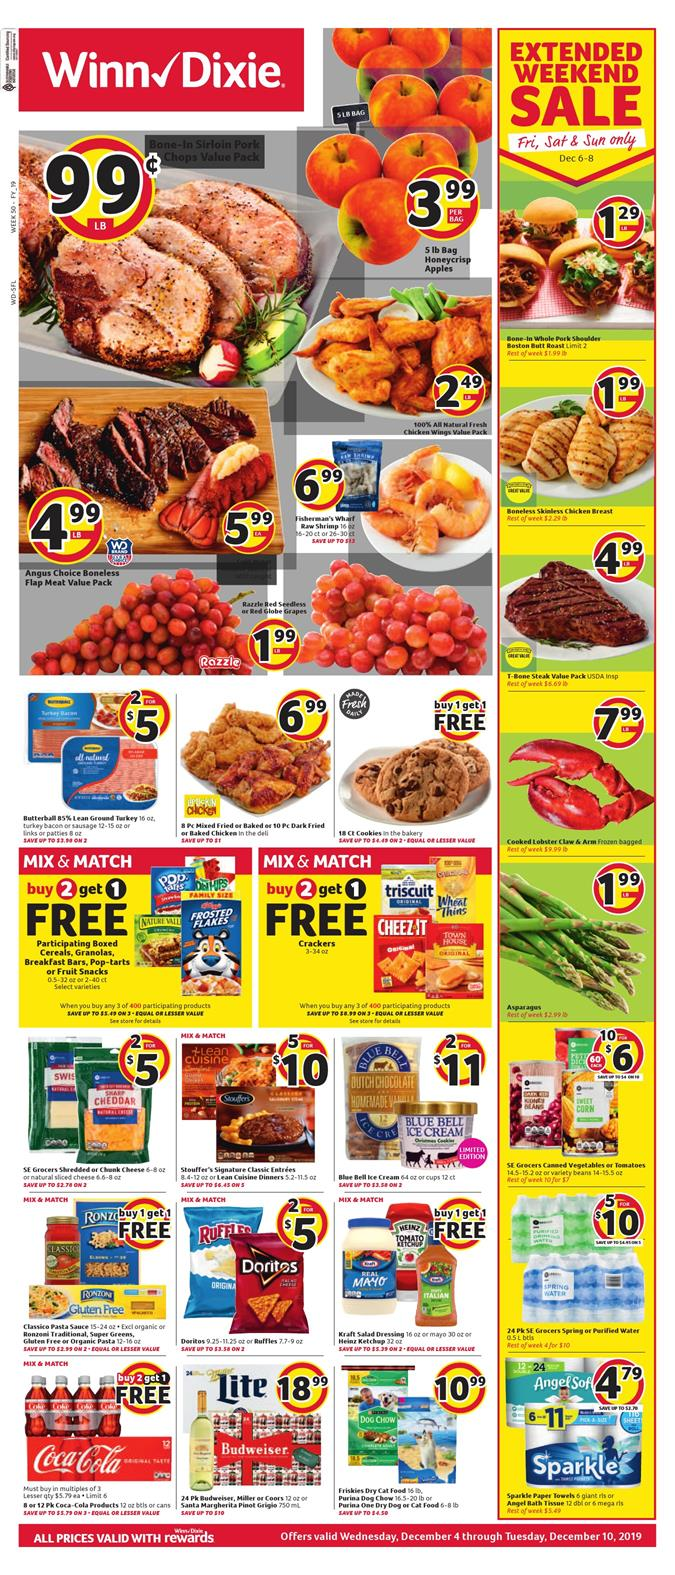 winn dixie weekly ad dec 4 2019